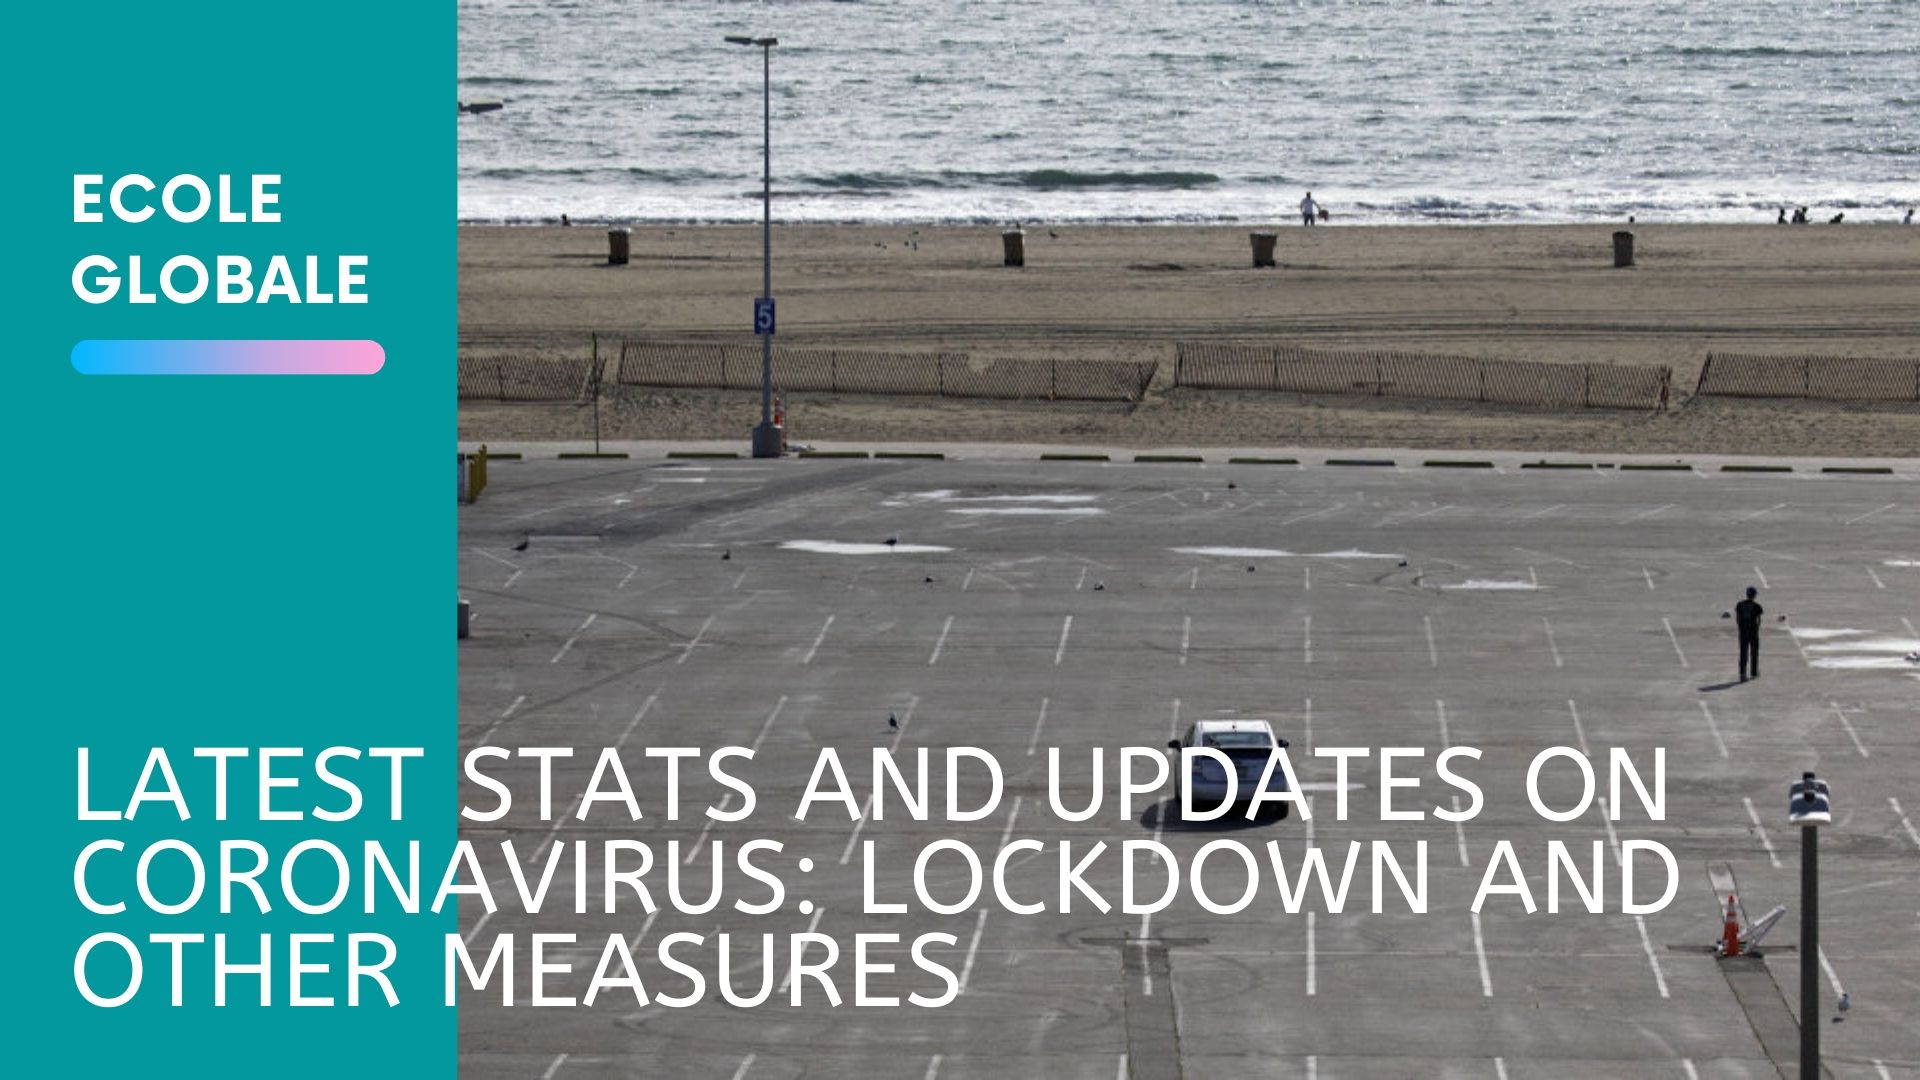 LATEST STATS AND UPDATES ON CORONAVIRUS: LOCKDOWN AND OTHER MEASURES